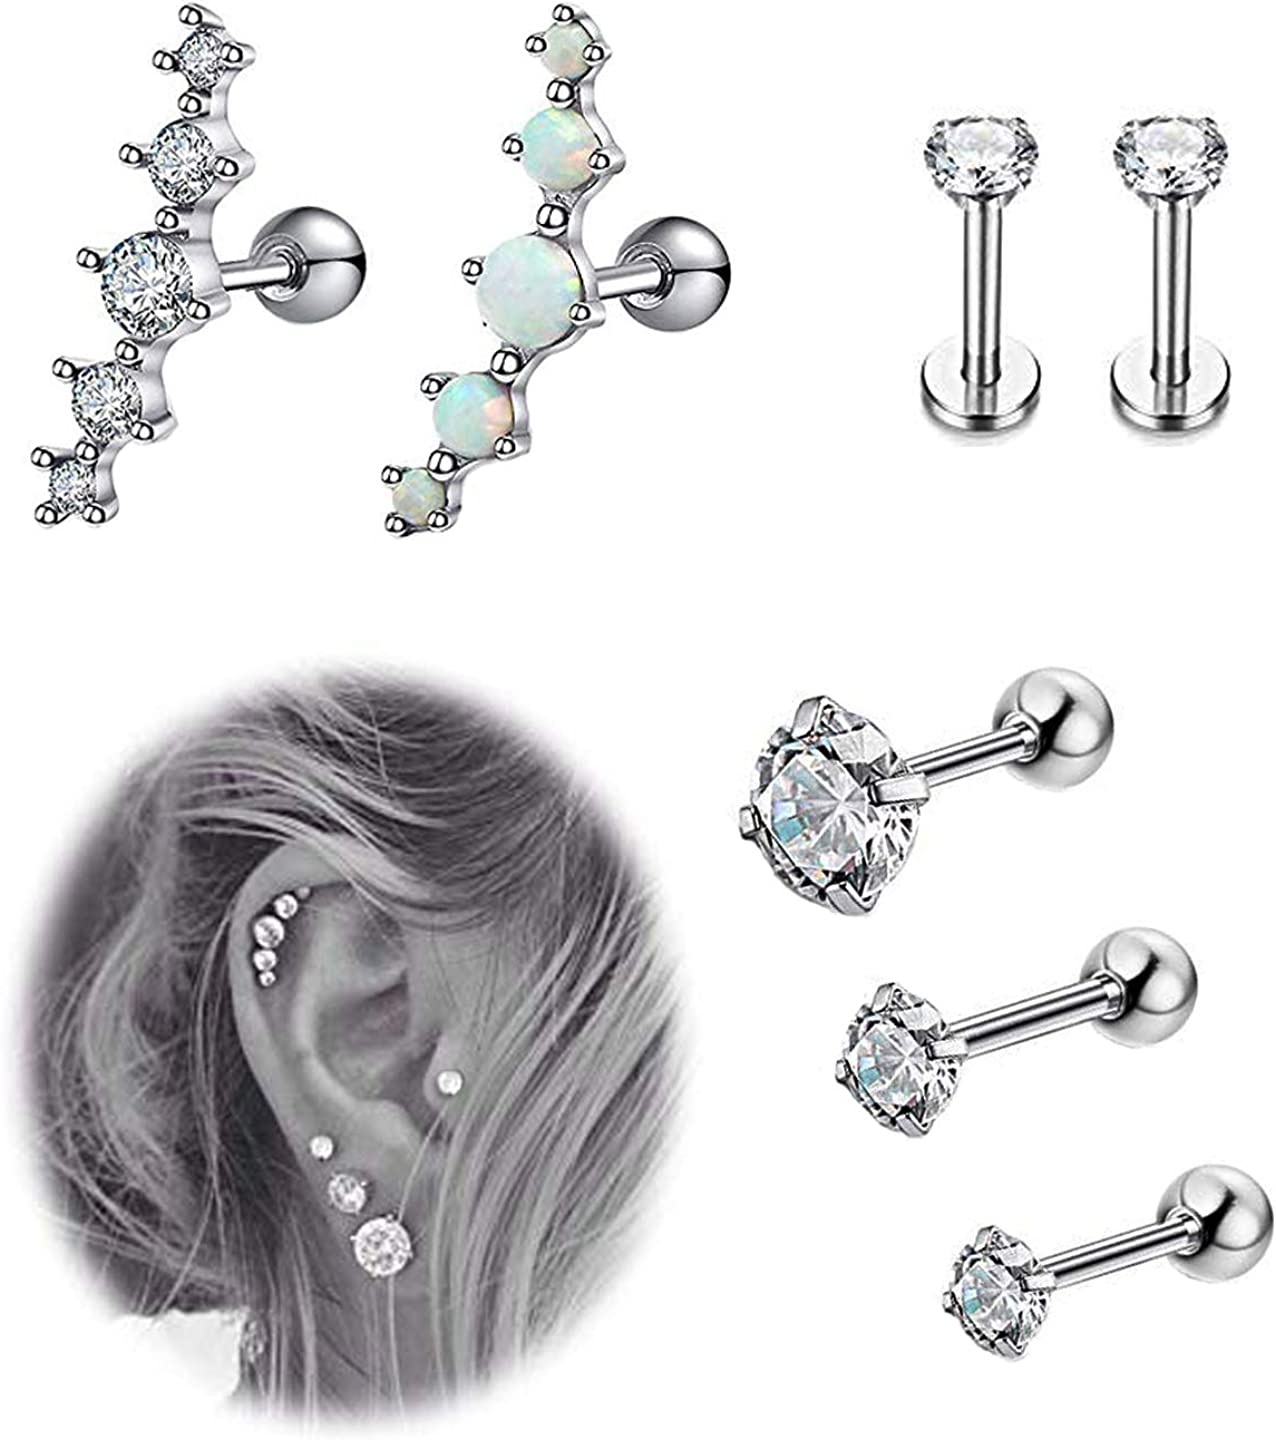 YOVORO 7Pcs 16G Stainless Steel Cartilage CZ Stud Earrings for Women Girls Helix Tragus Daith Piercing Jewelry